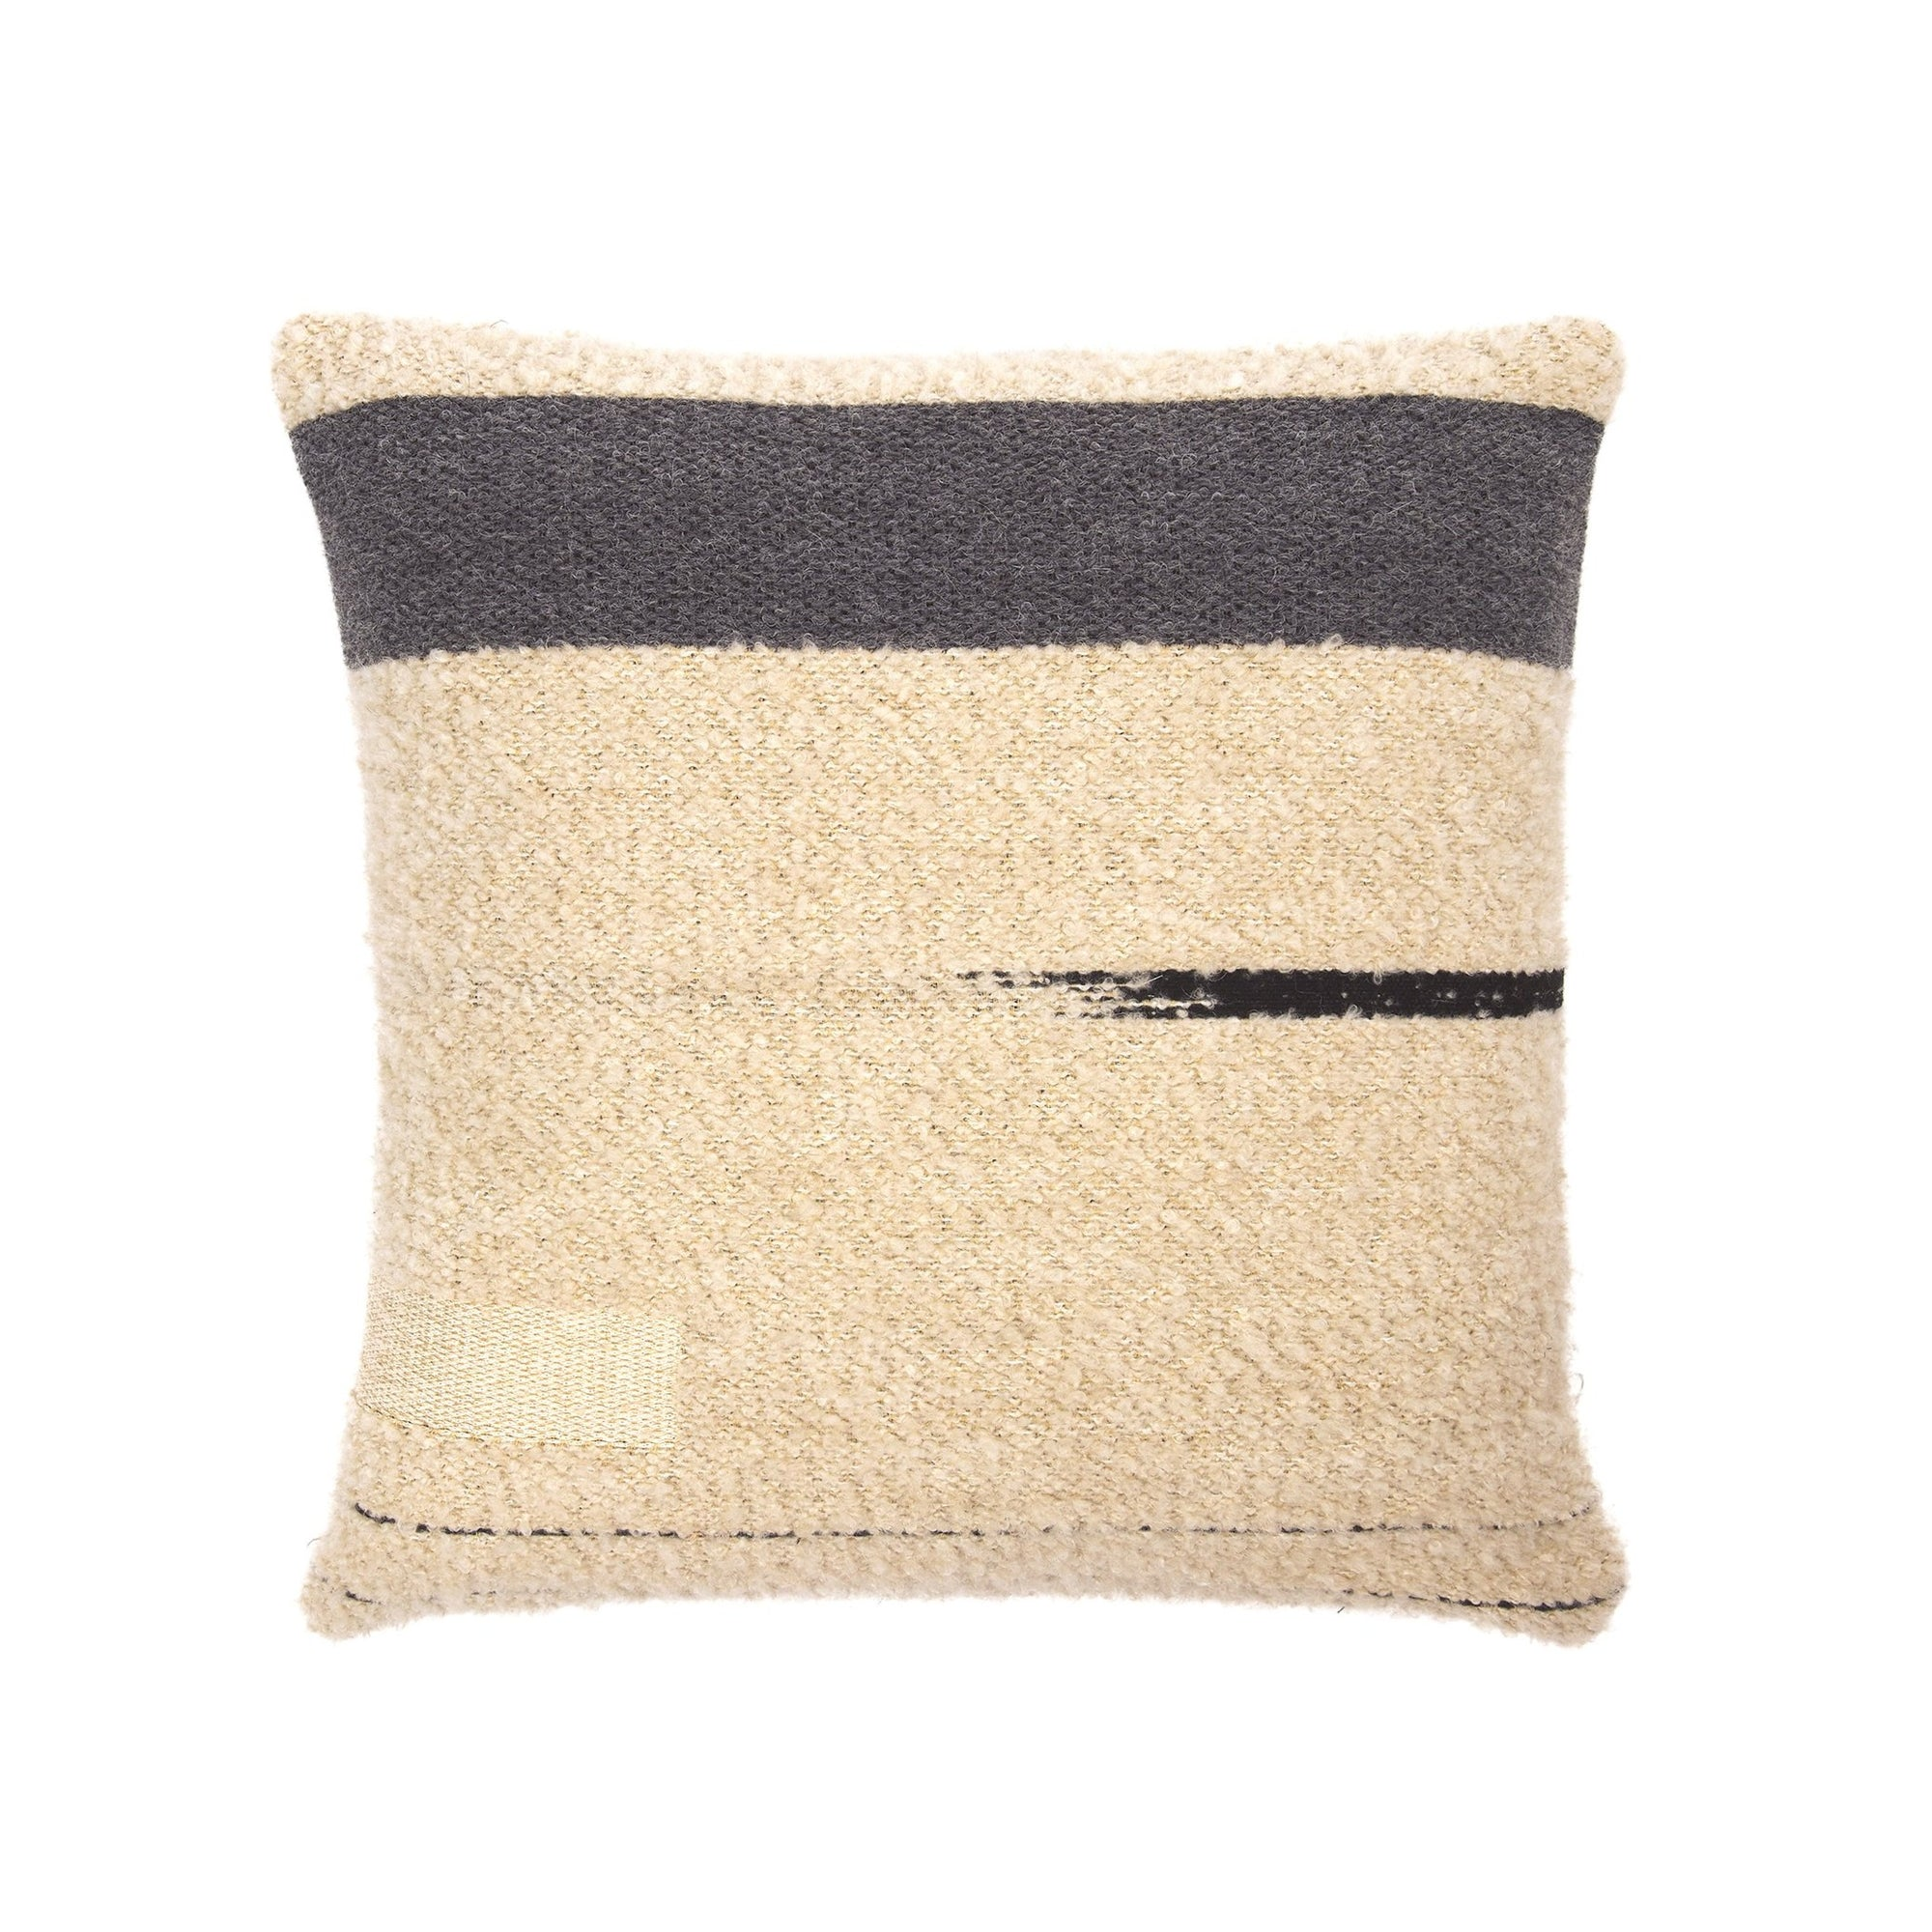 Urban cushion